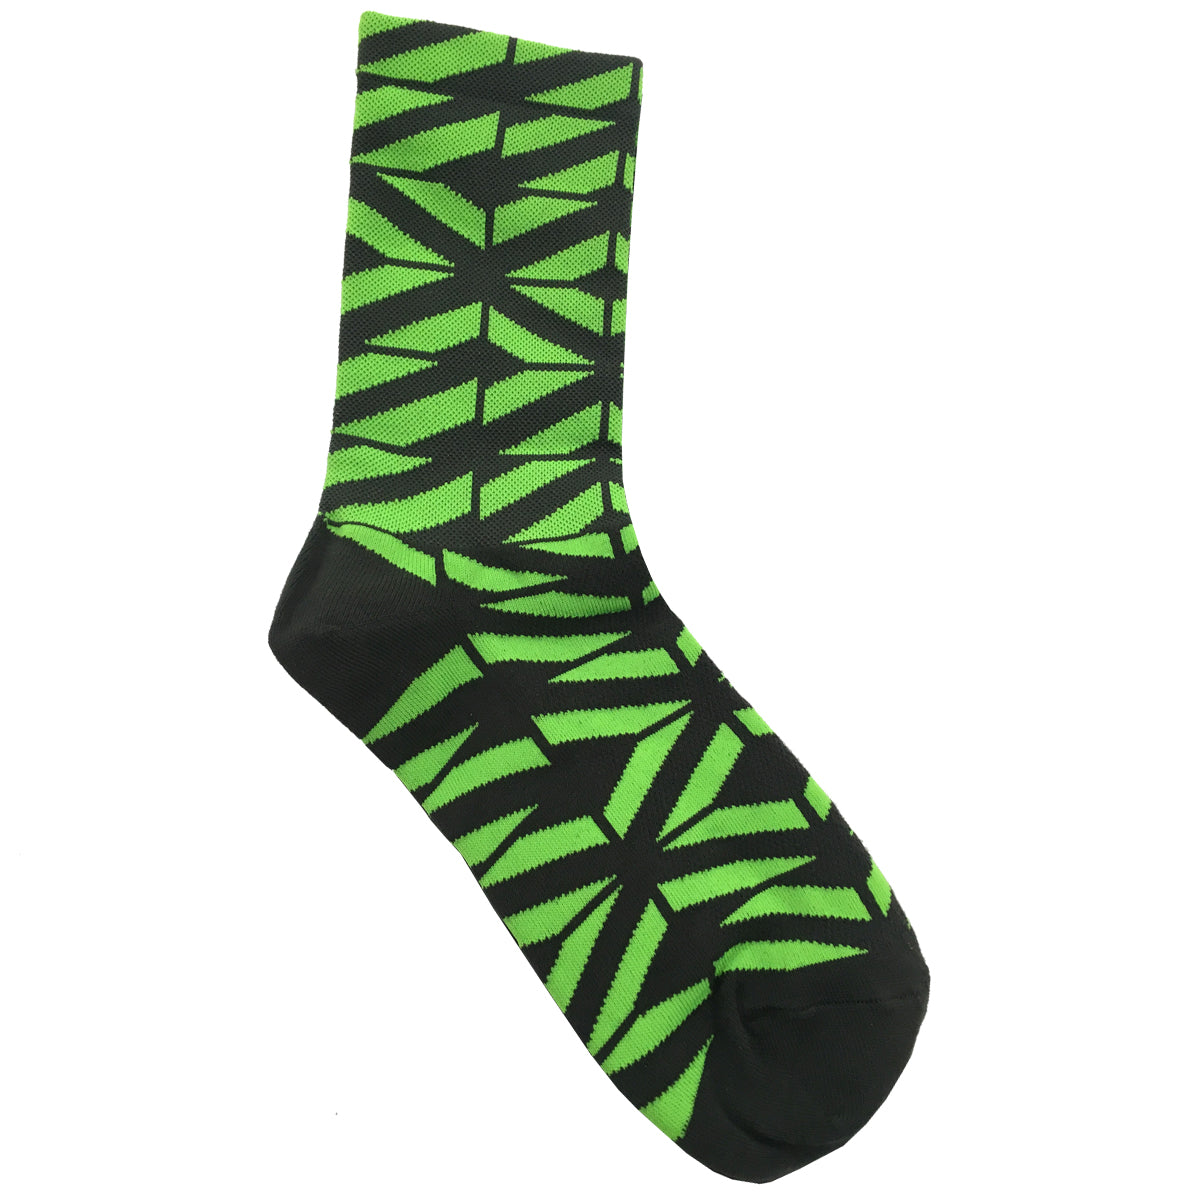 Primal Neon Crush Socks